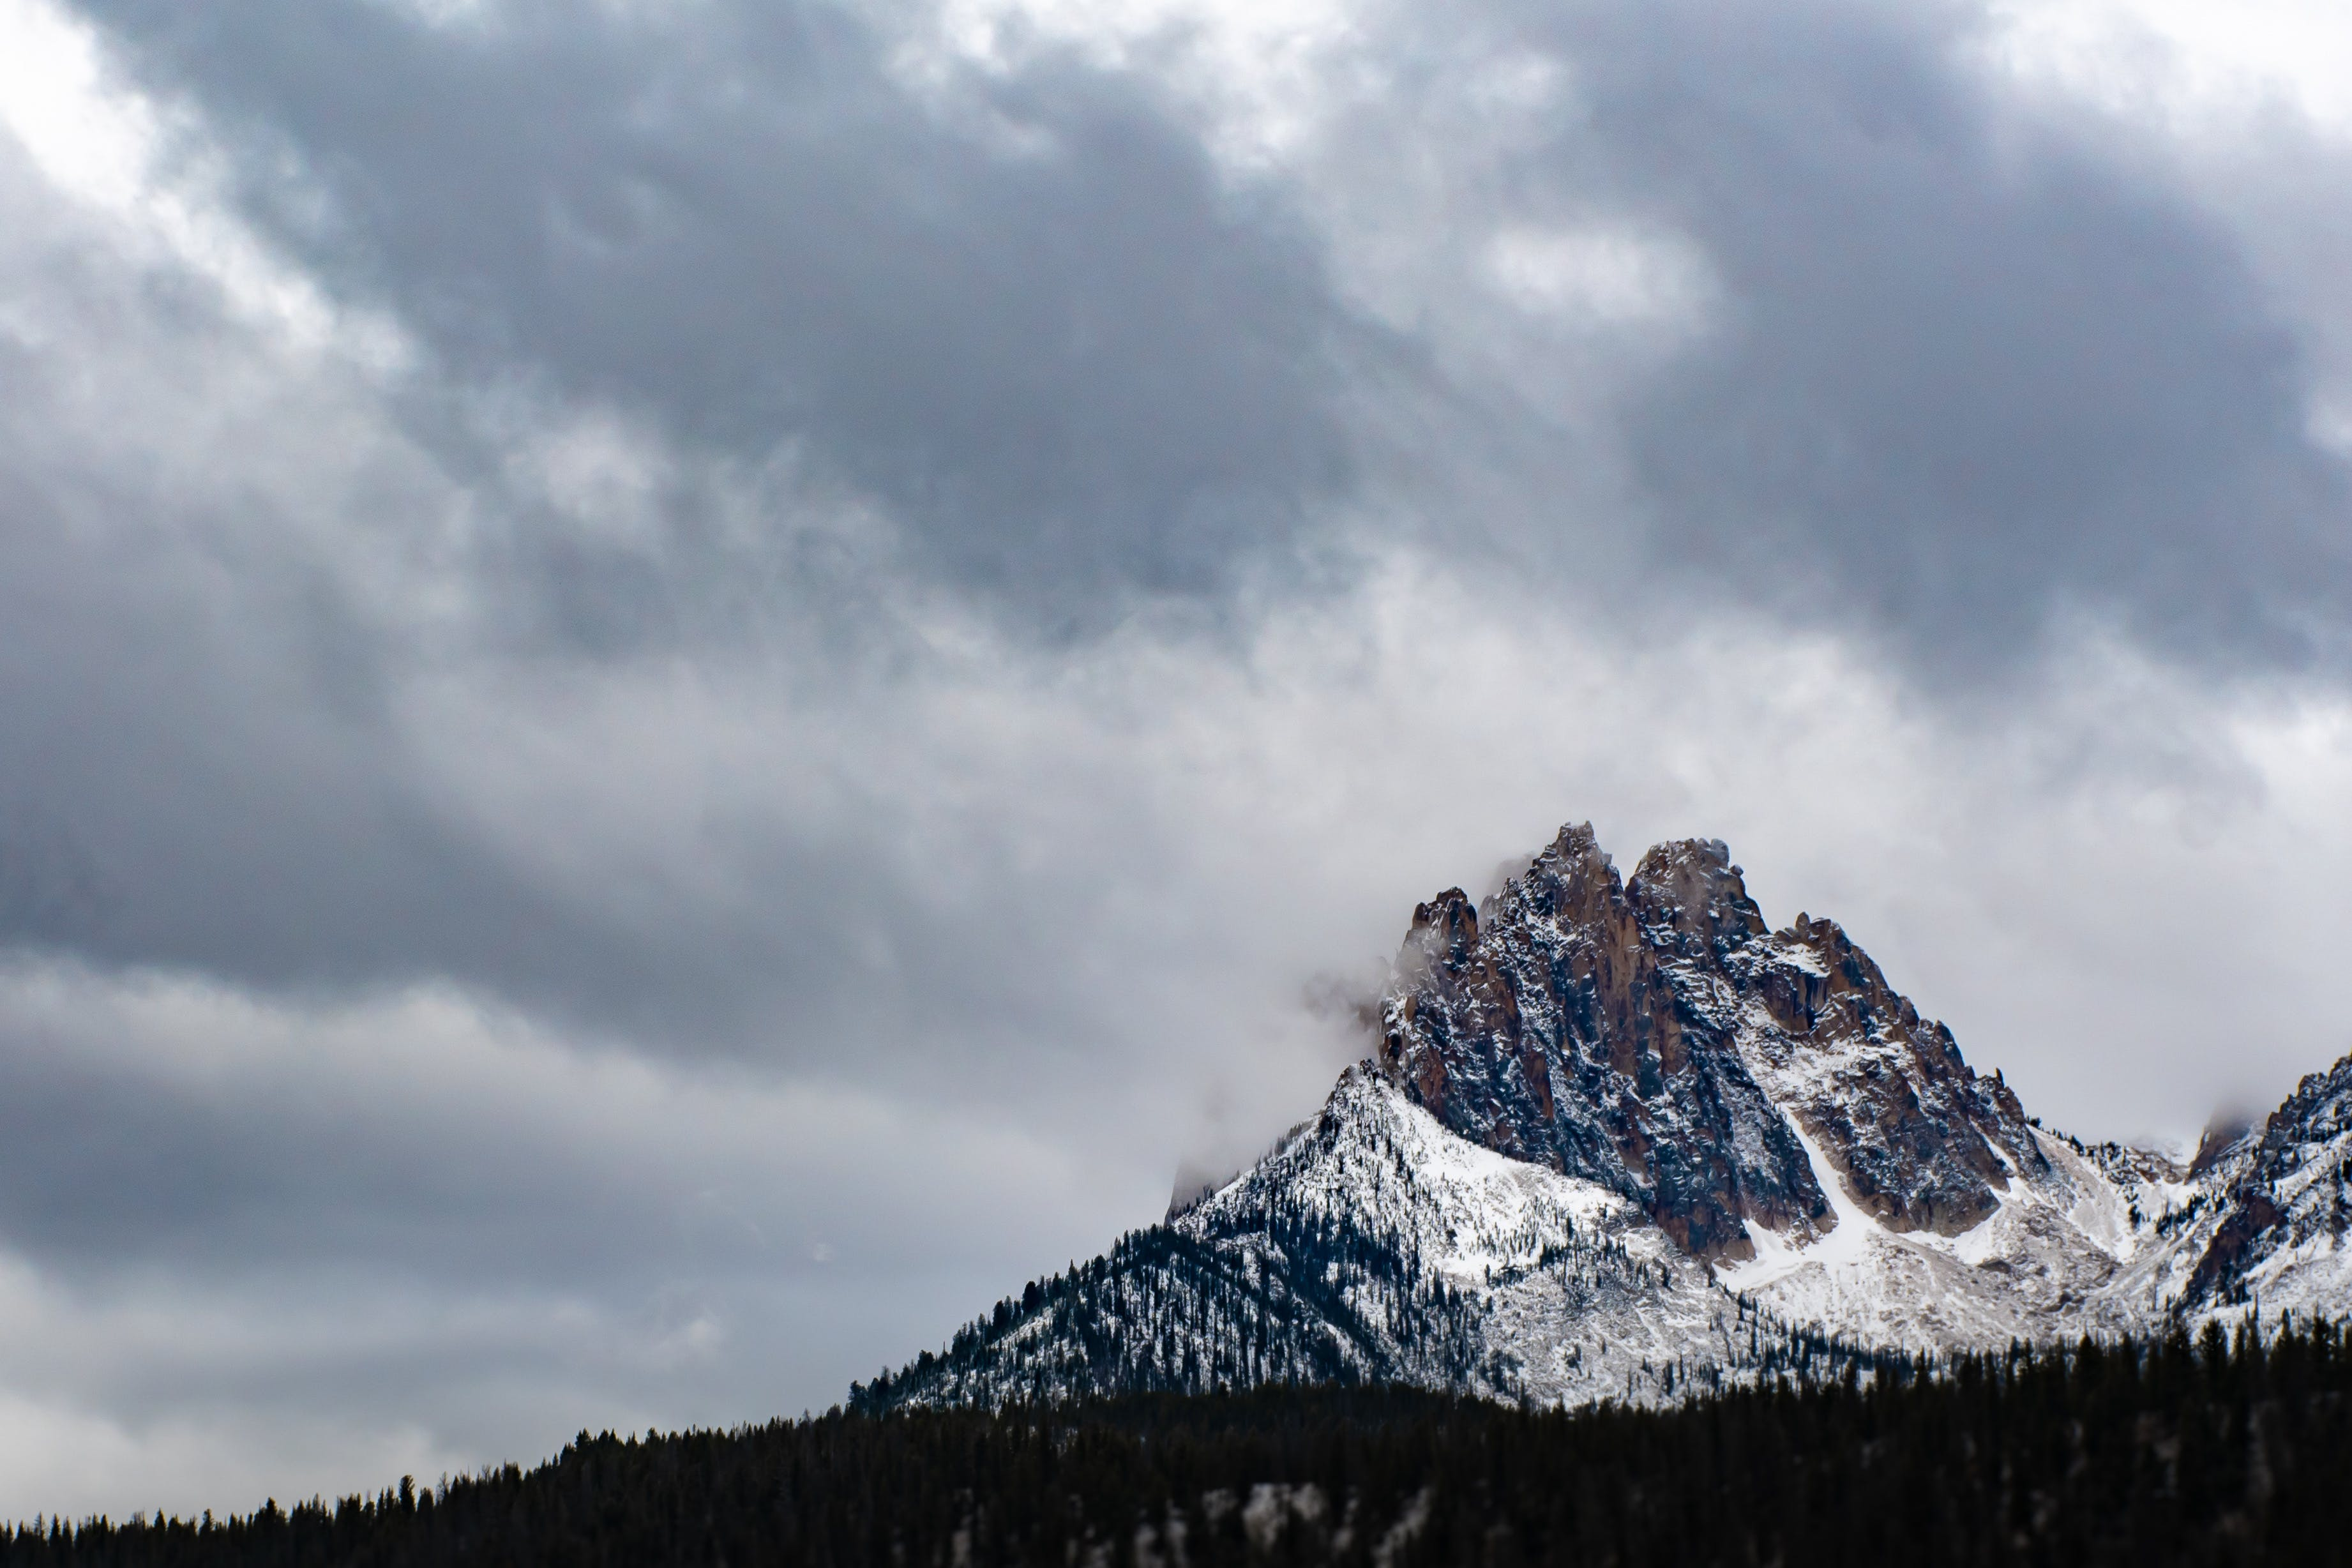 Gray and White Mountain Under Gray Clouds